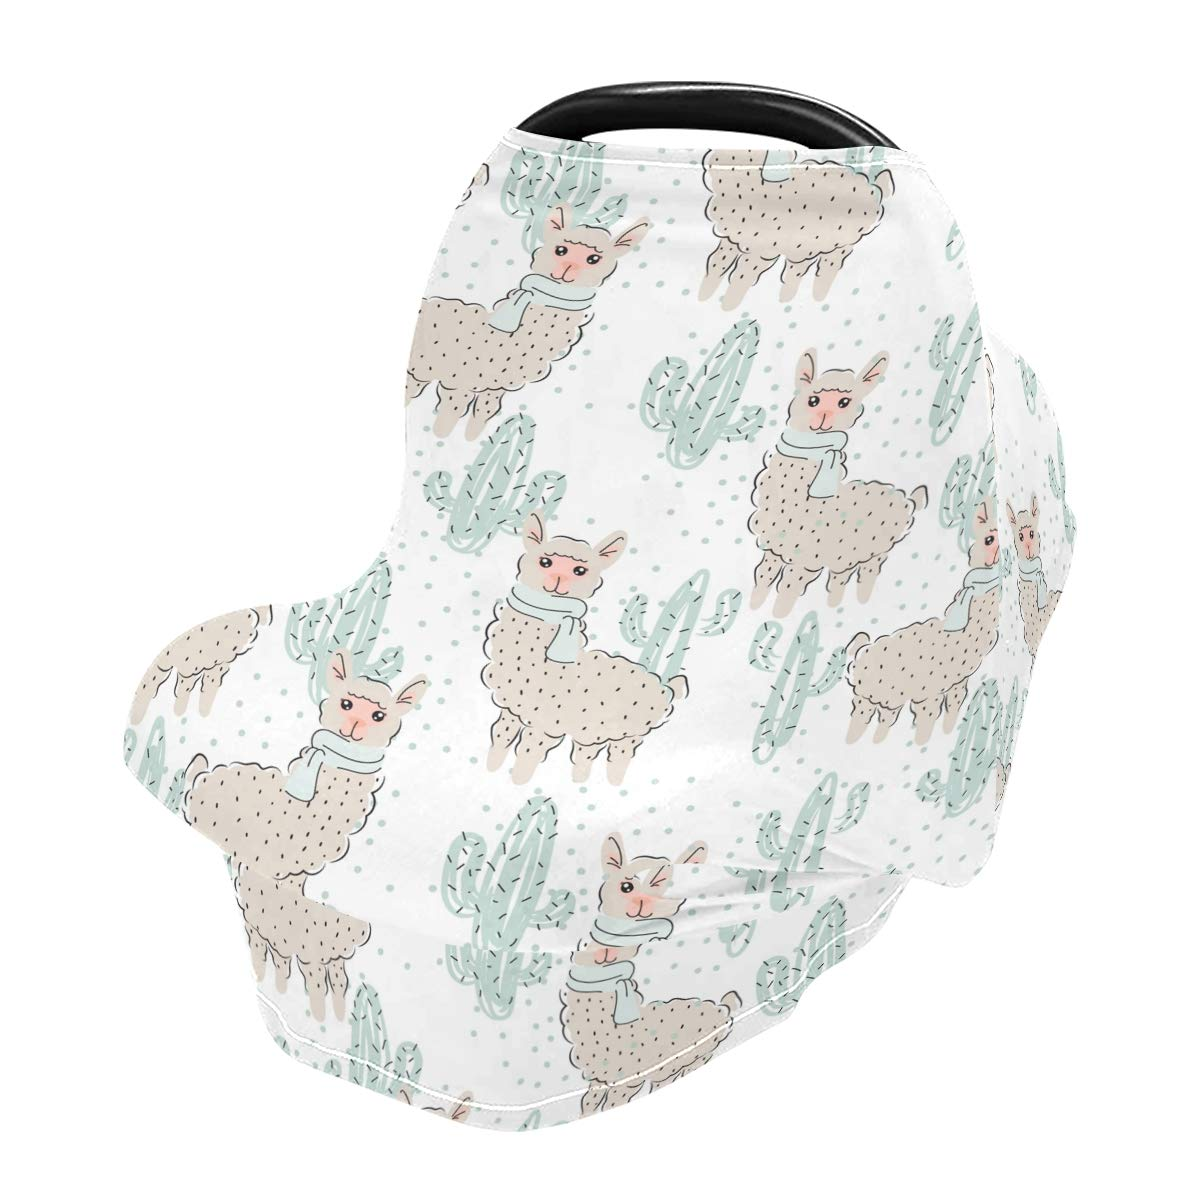 Nursing Cover Grey Sleep Breastfeeding Soft Carseat Canopy Multi Use for Baby Car Seat Covers Canopy Shopping Cart Cover Scarf Light Blanket Stroller Cover